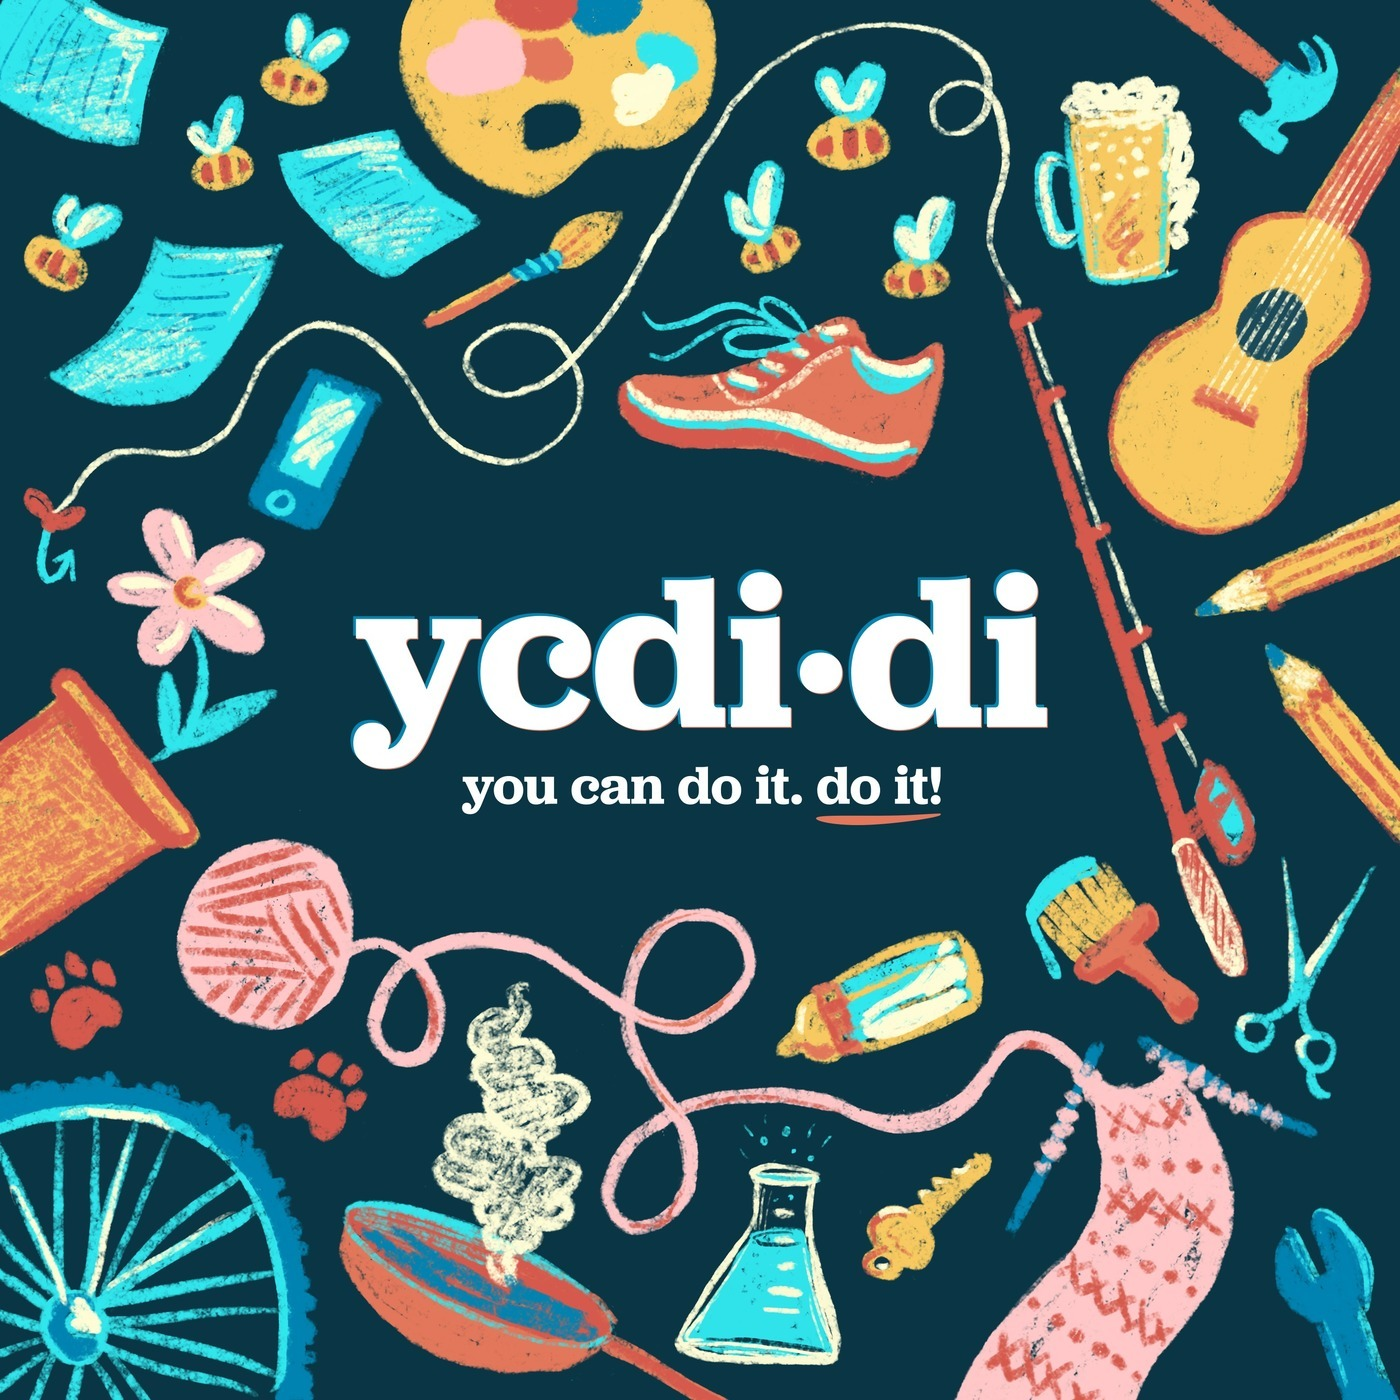 ycdi·di (You can do it, do it): Zach Gibb is a Software Engineer